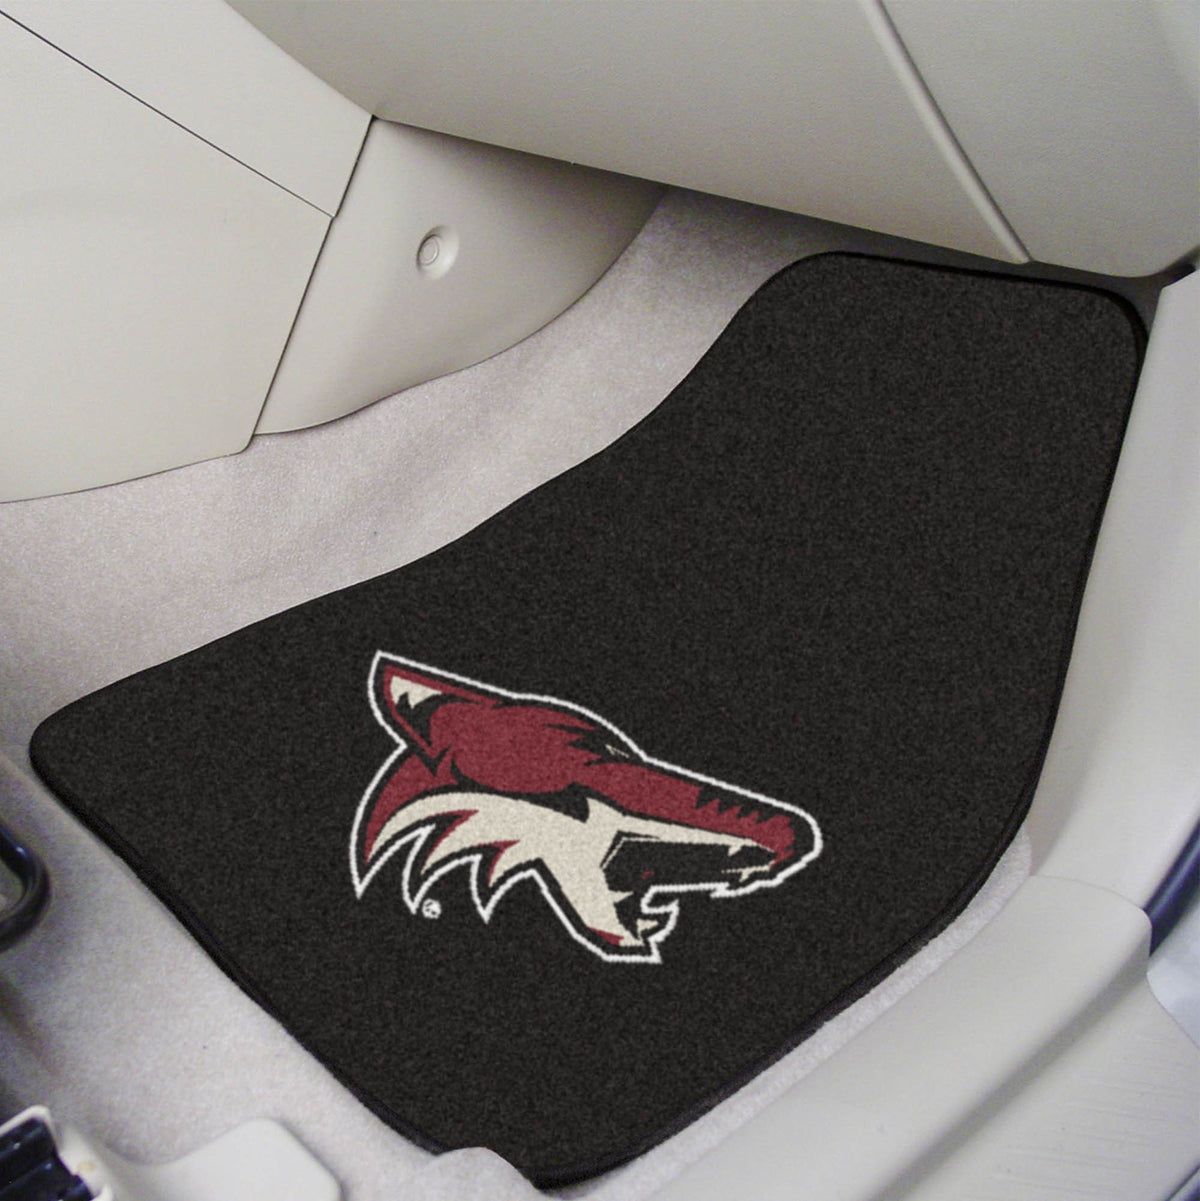 NHL - Carpet Car Mat, 2-Piece Set NHL Mats, Front Car Mats, 2-pc Carpet Car Mat Set, NHL, Auto Fan Mats Arizona Coyotes